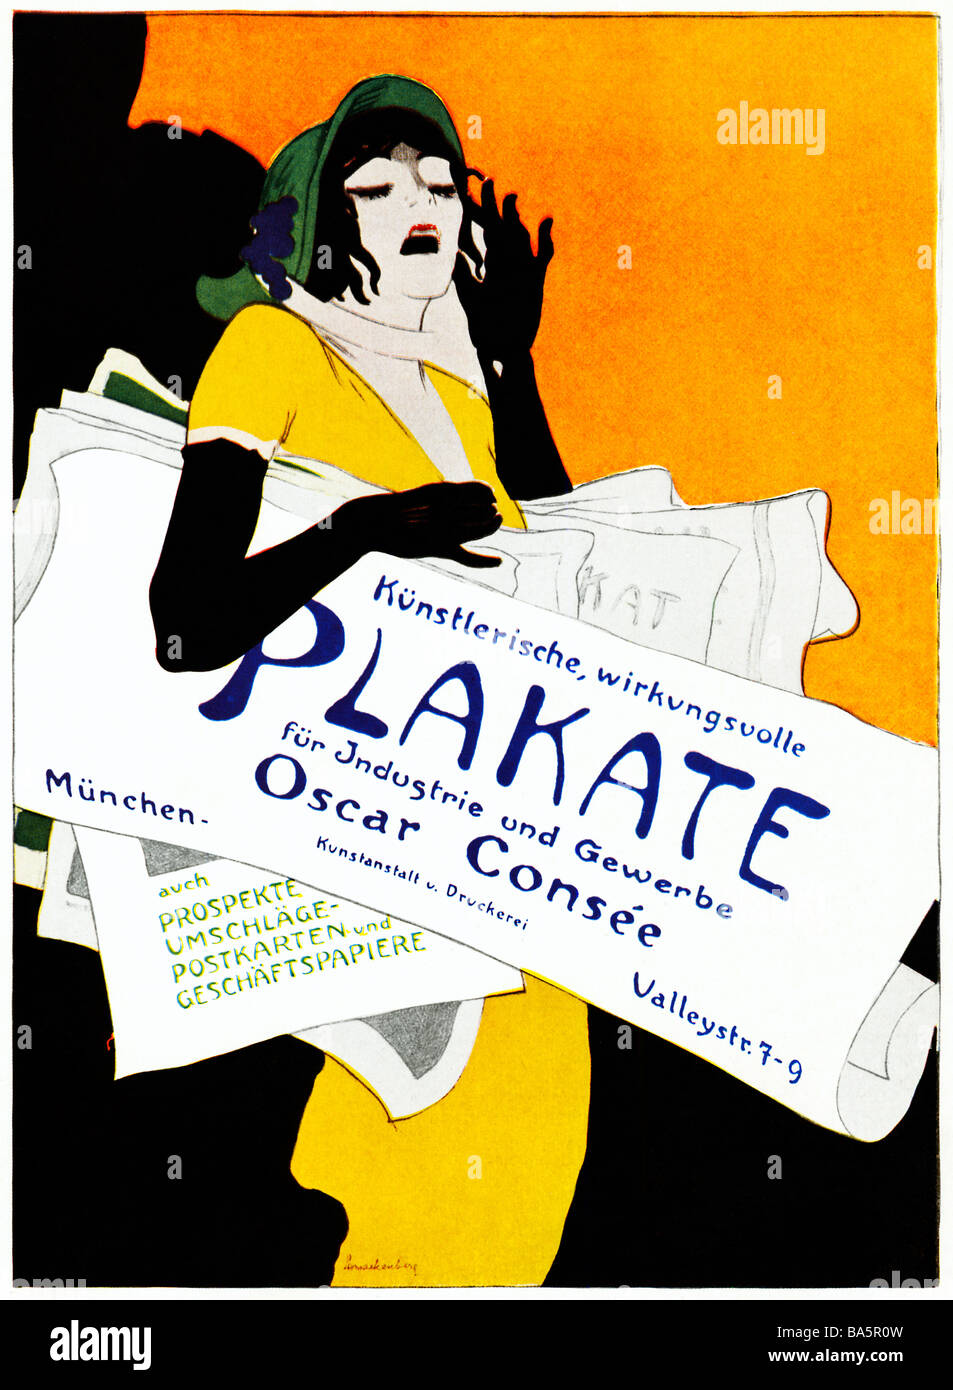 Plakate Oscar Consee 1920 Art Deco poster for the Munich printer of Artistic and Effective Posters for Industry - Stock Image